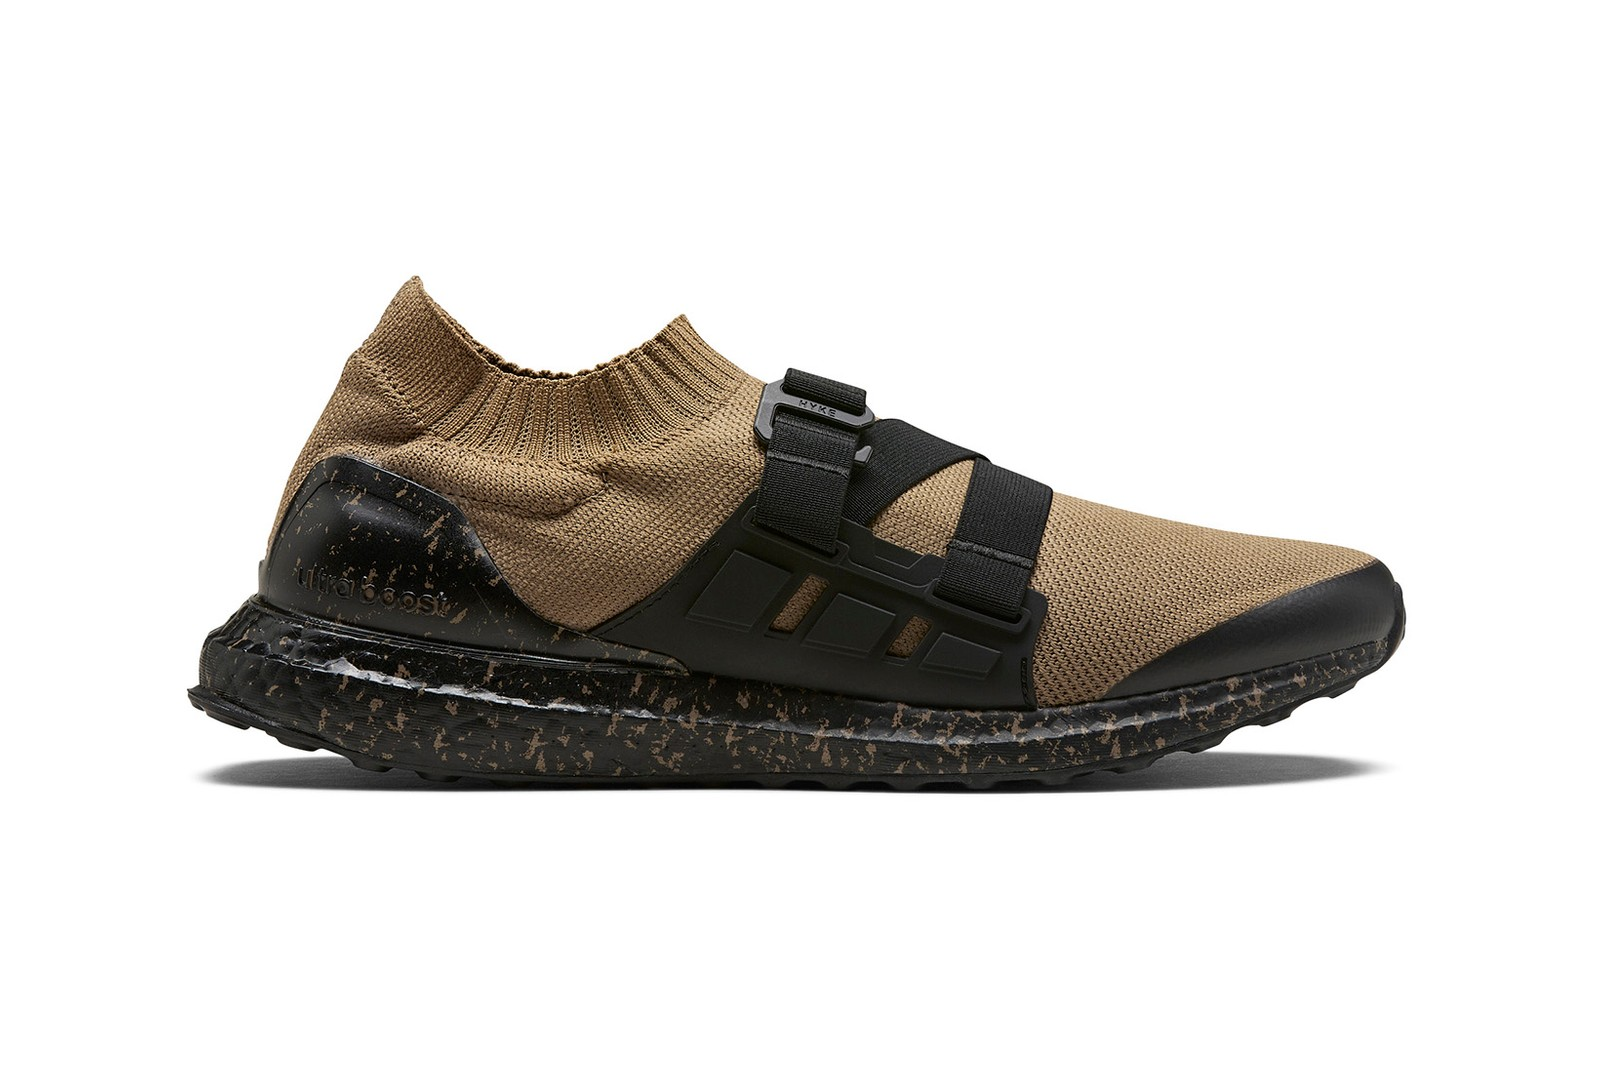 HYKE x adidas Spring/Summer 2020 Collection Collaboration UltraBOOST